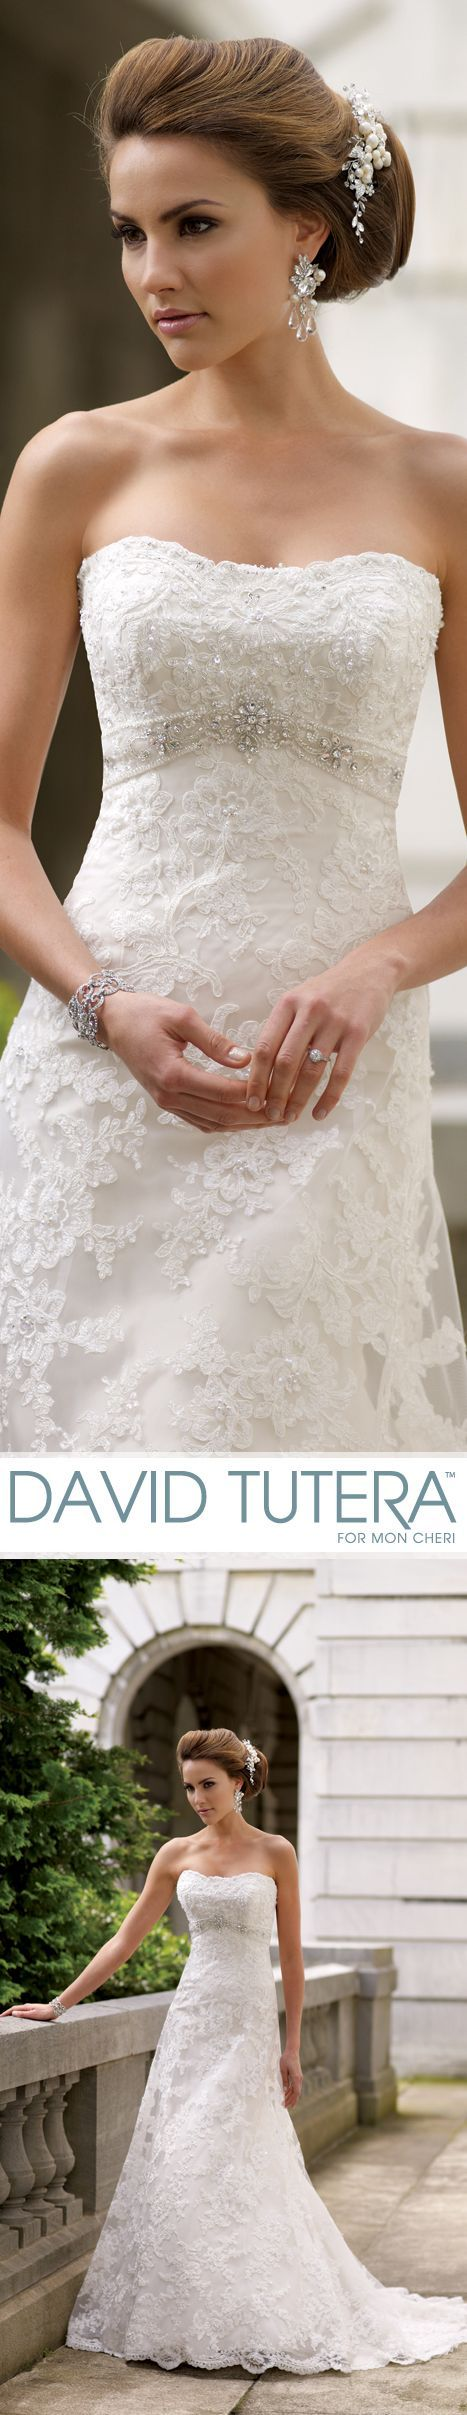 Wedding Hairstyle For Long Hair  : Style No. 113211  Anita Strapless embroidered lace with hand-beaded accents and